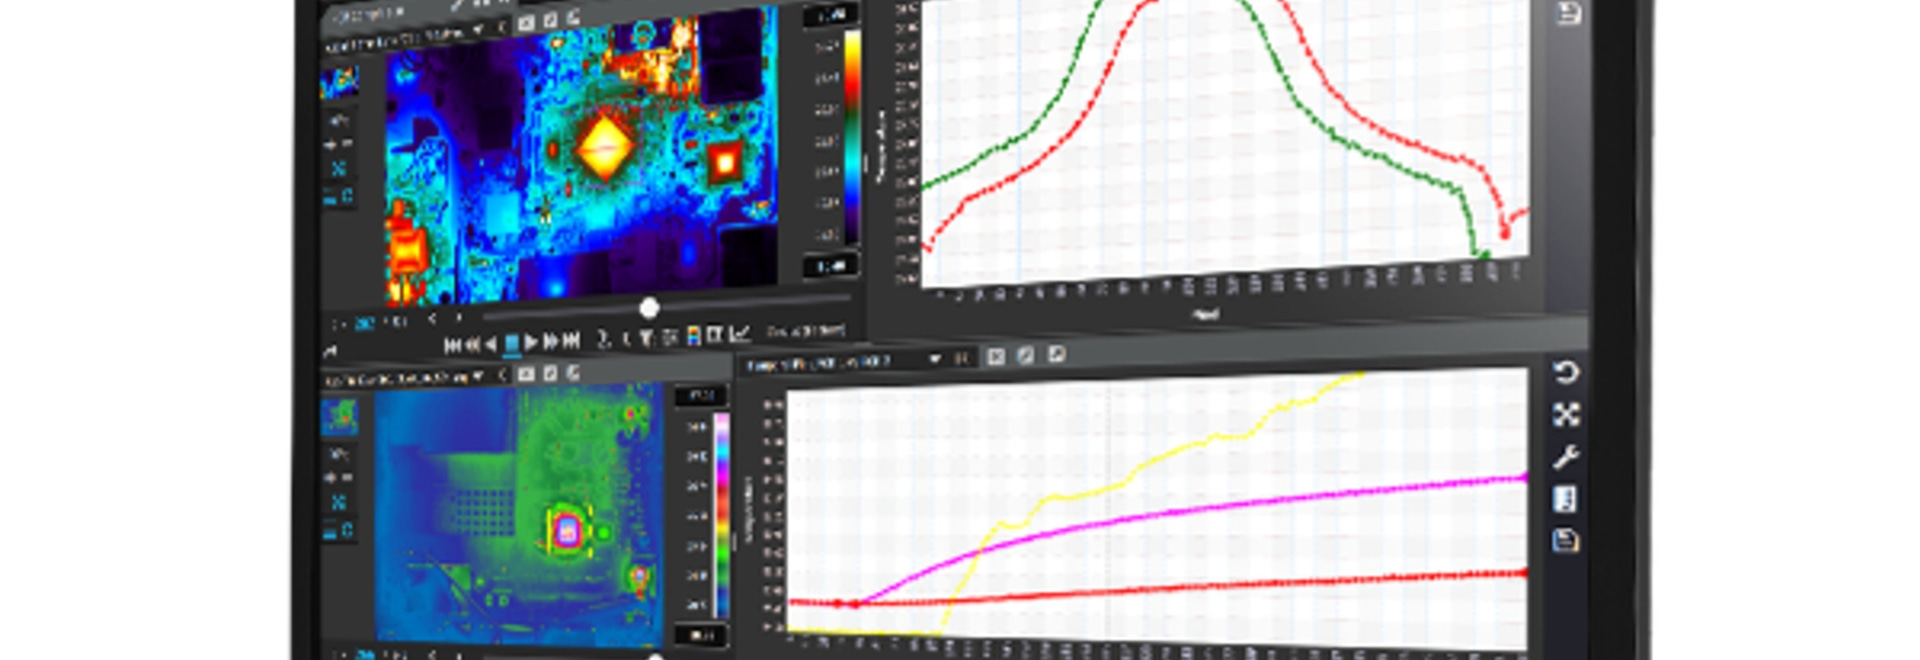 Multi-Platform Software for Thermal Imaging Data Collection and Analysis